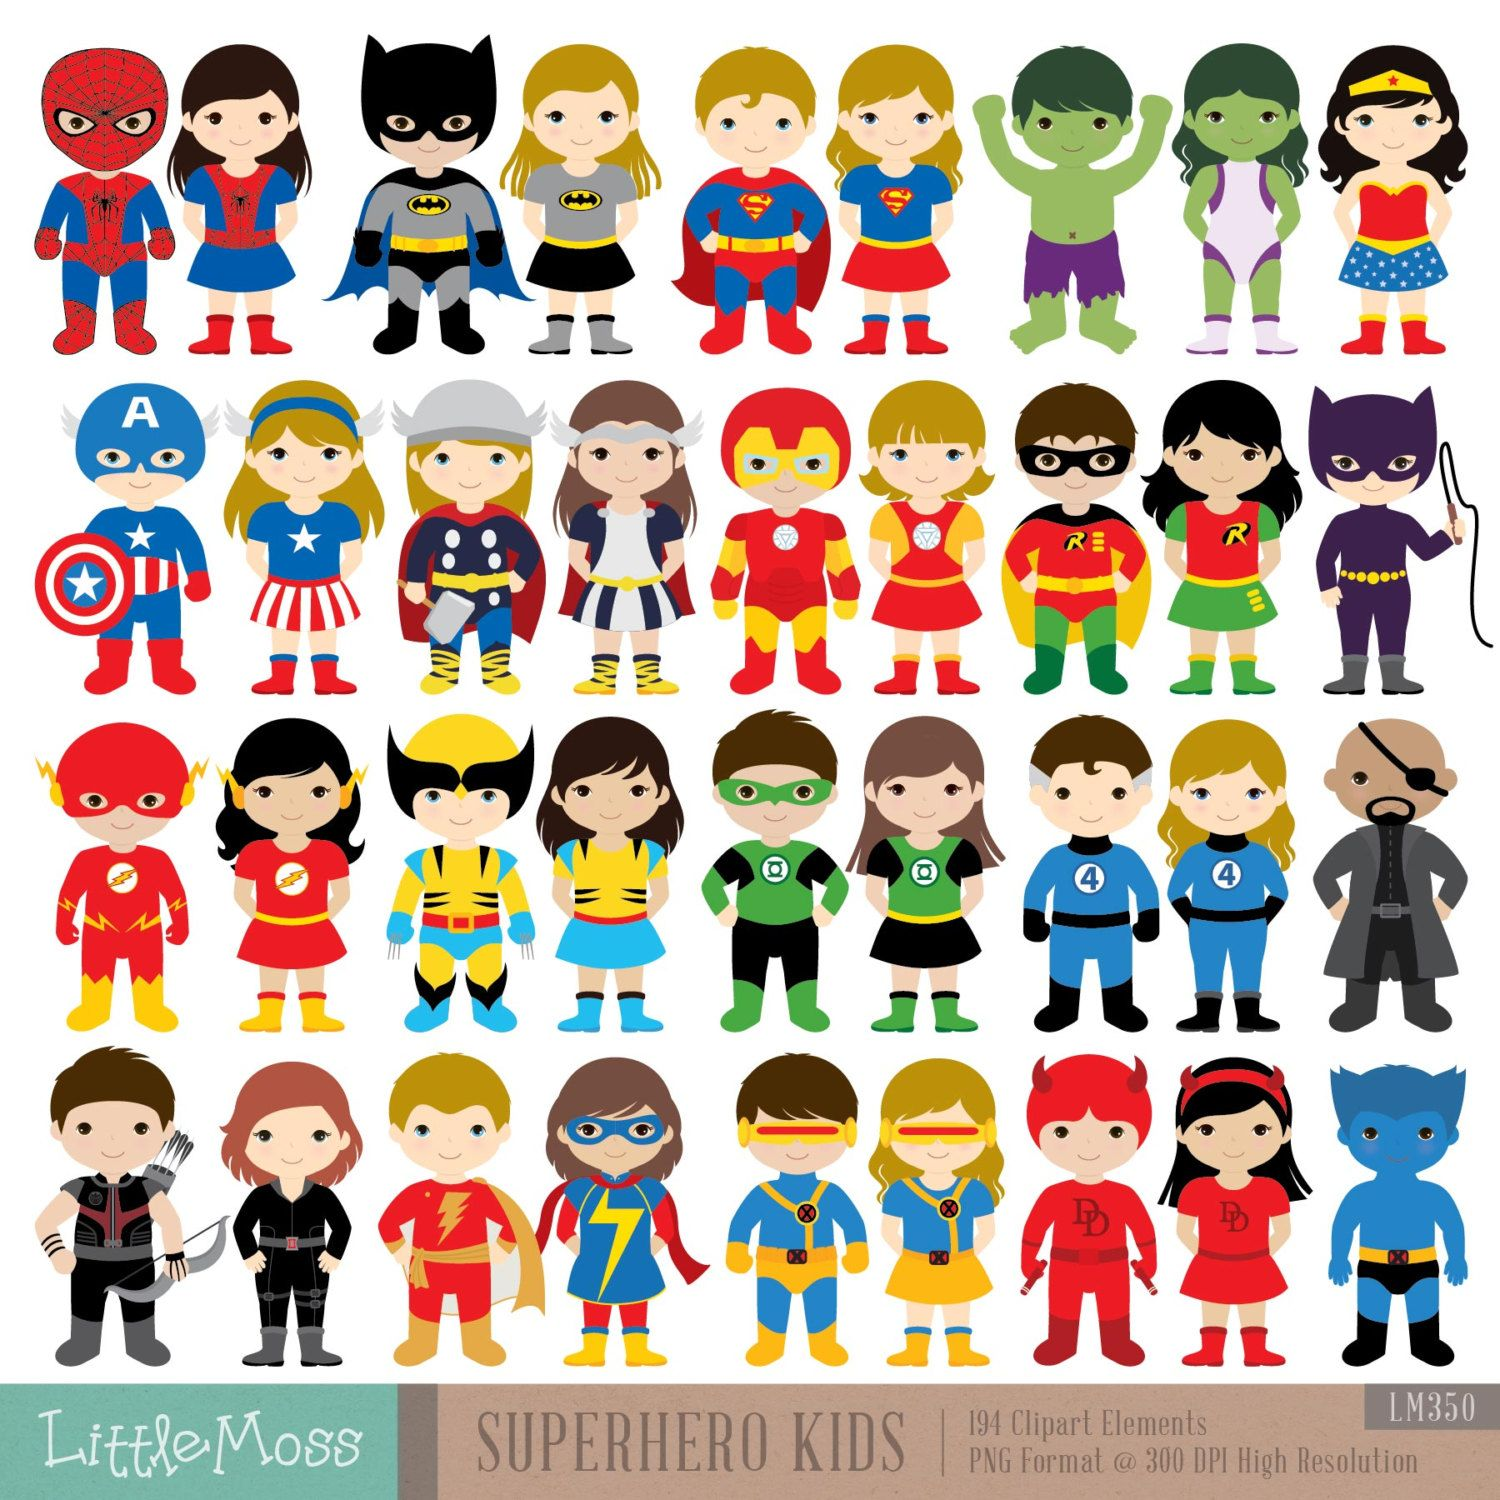 small resolution of girl superhero costumes superhero characters super hero costumes superhero clipart paper products